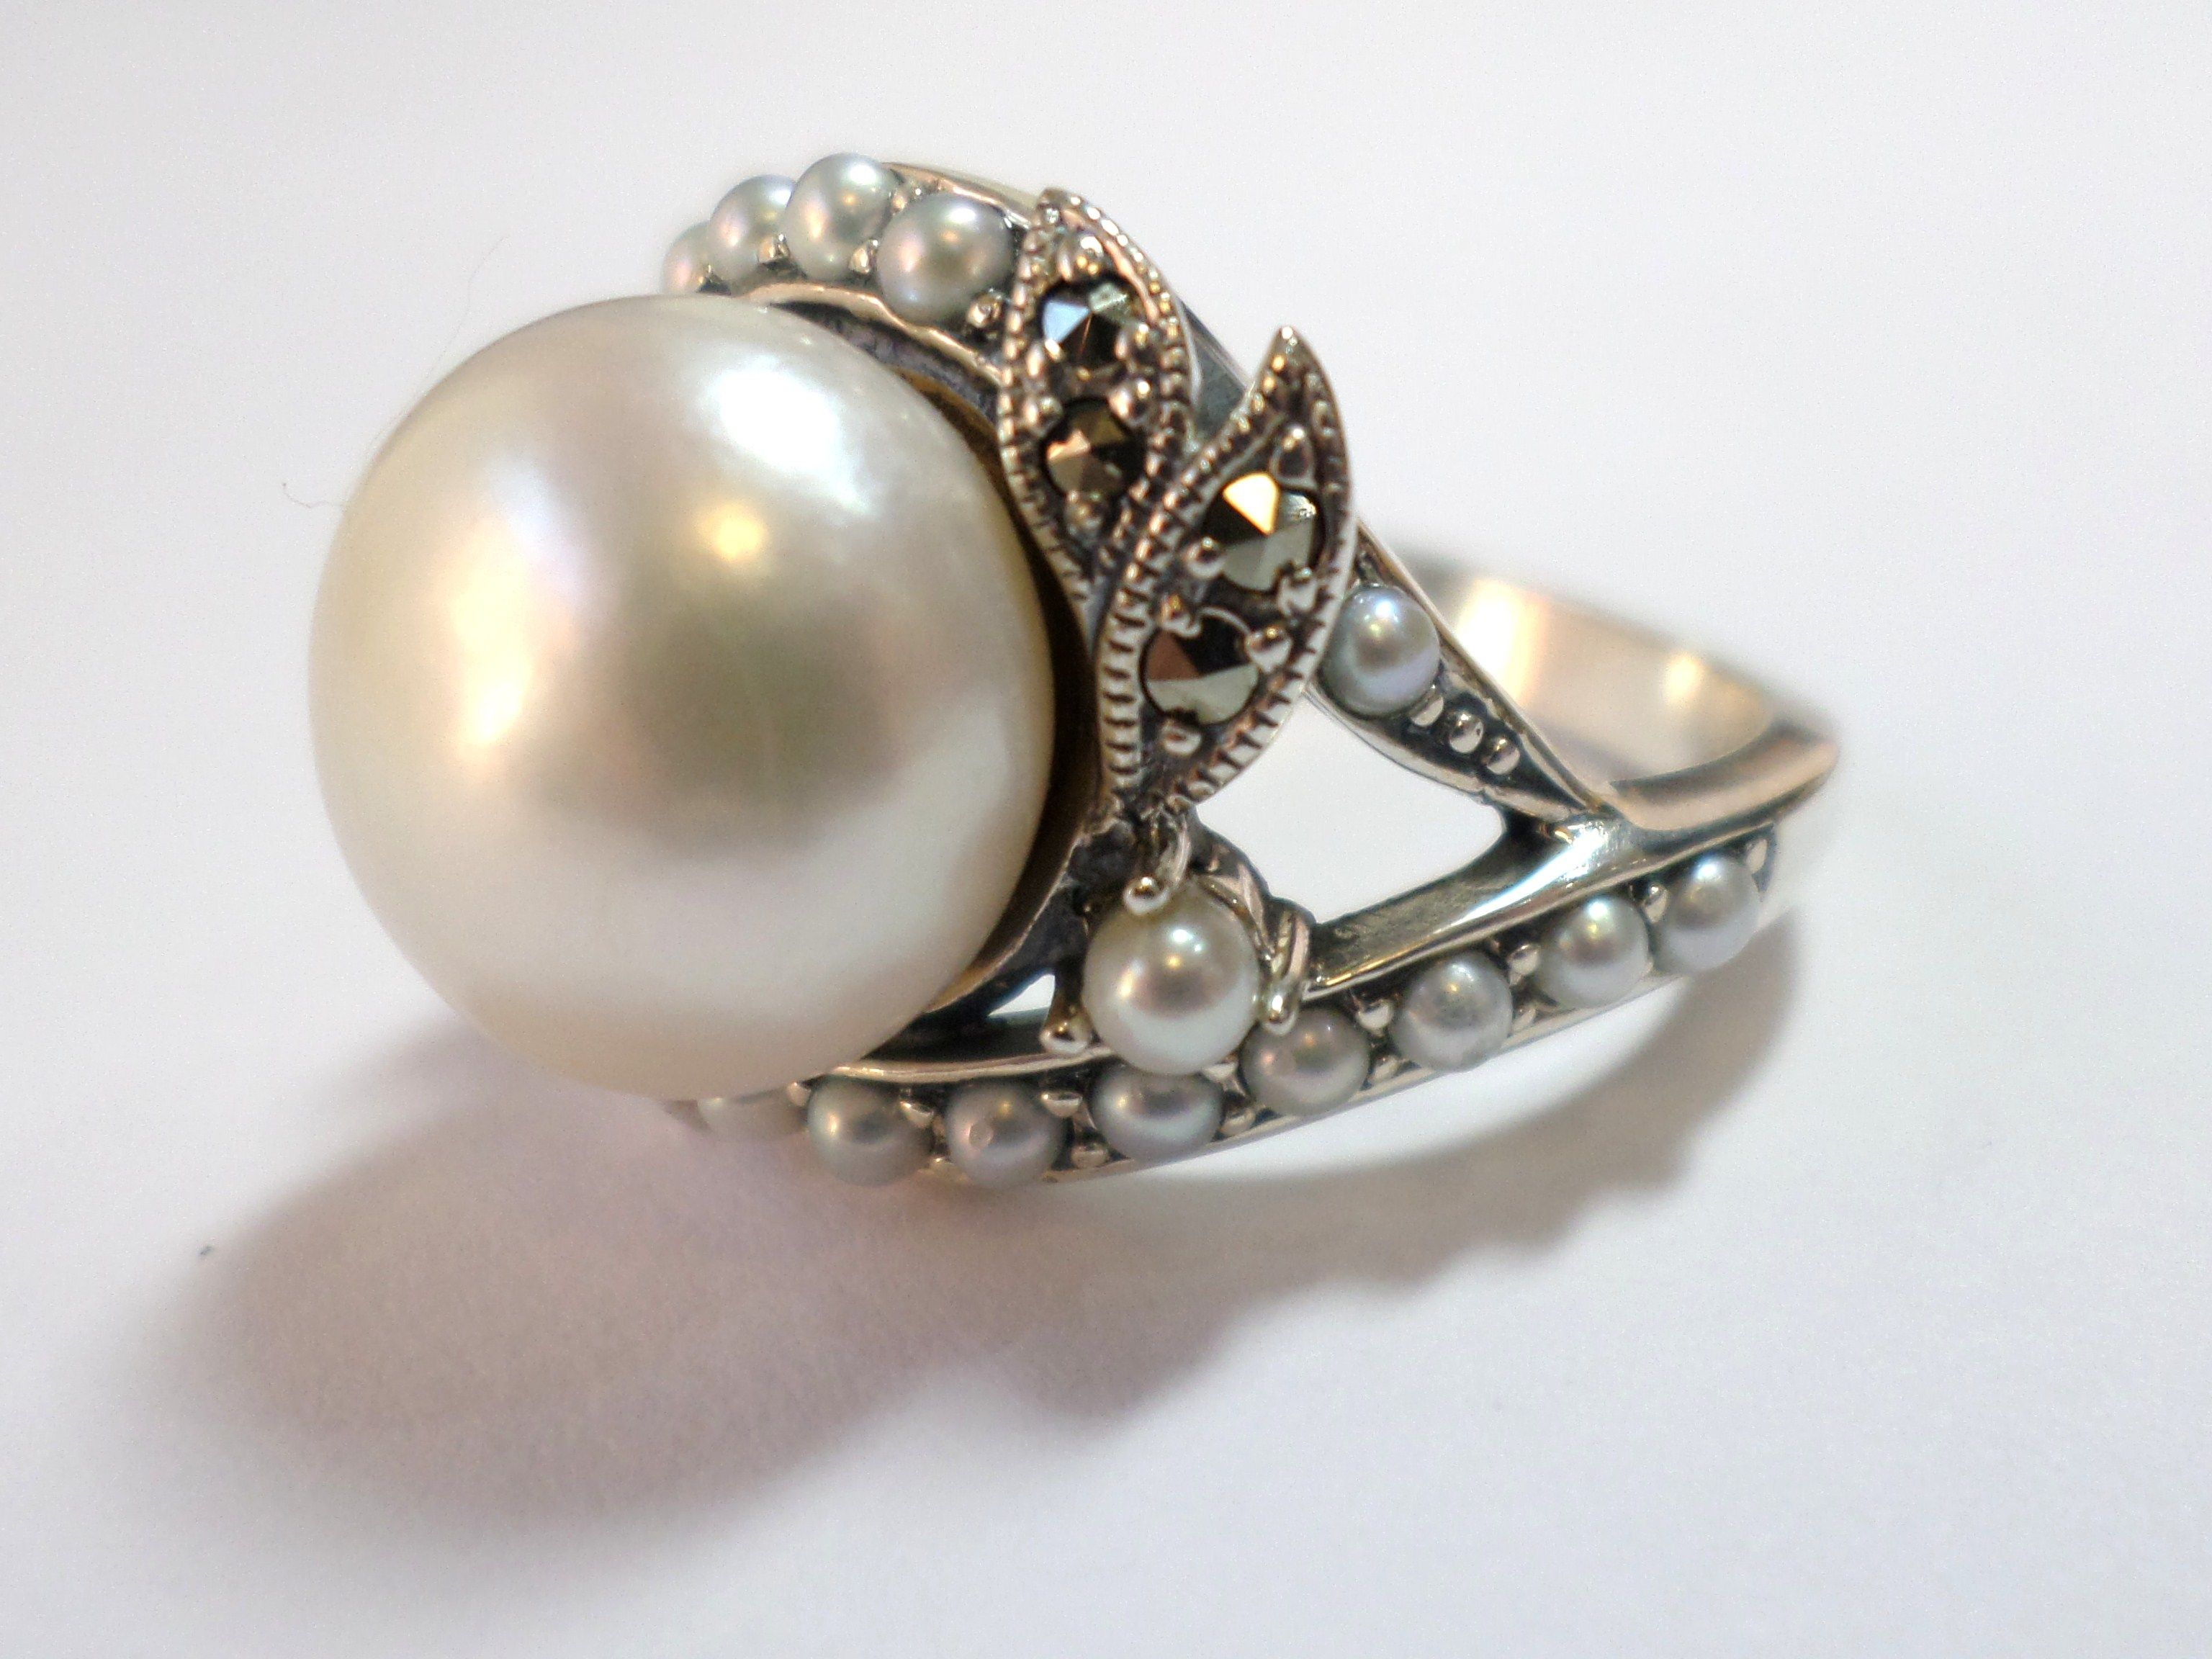 Sterling Silver Ring Set With Marcasite And Cultured Freshwater Pearl Vintage Antique Reproduction Jeweller Marcasite Jewelry Jewelry Sterling Silver Rings Set